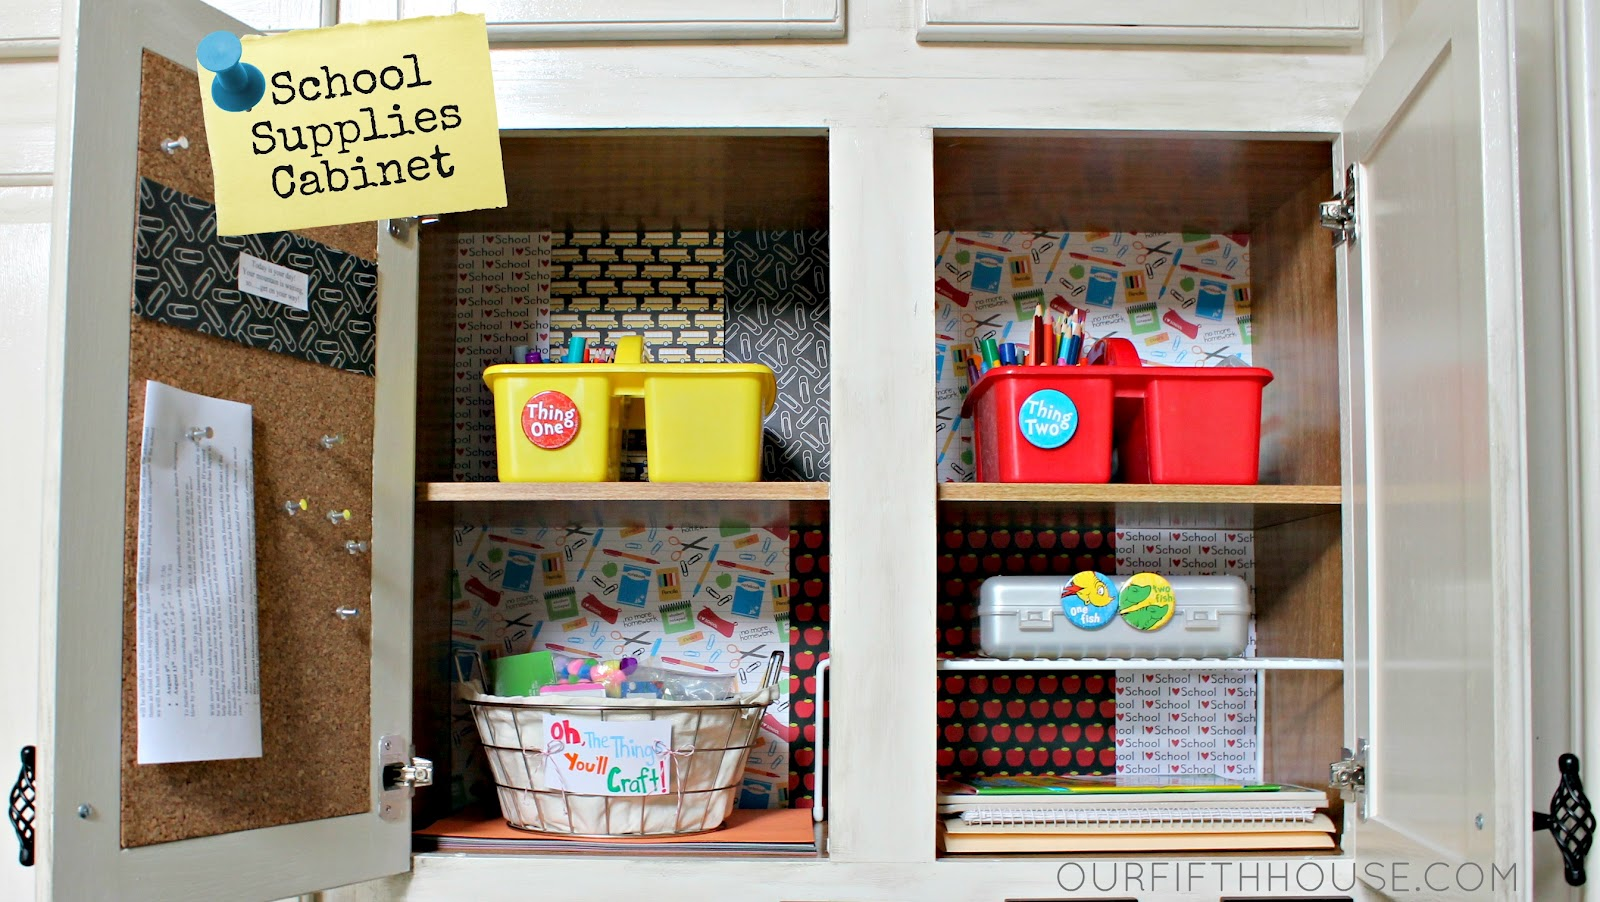 Our Fifth House Organizing Homework Supplies Back To